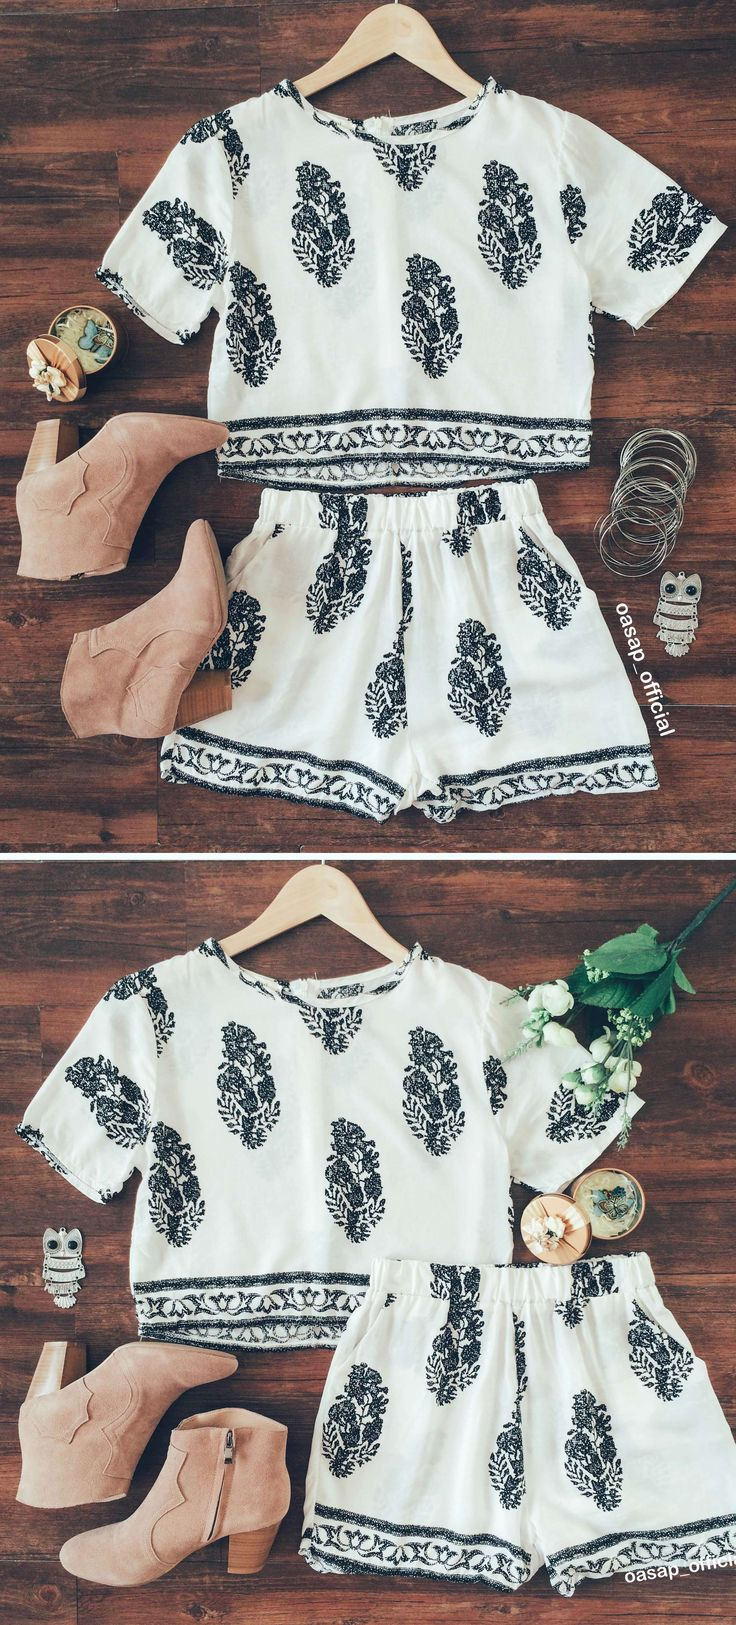 On days when you're too rushed to even think of what to wear, reach for this outfit.Dress it up and you'll be comfy and cute all day long. Bohemian floral print.More surprise at OASAP!